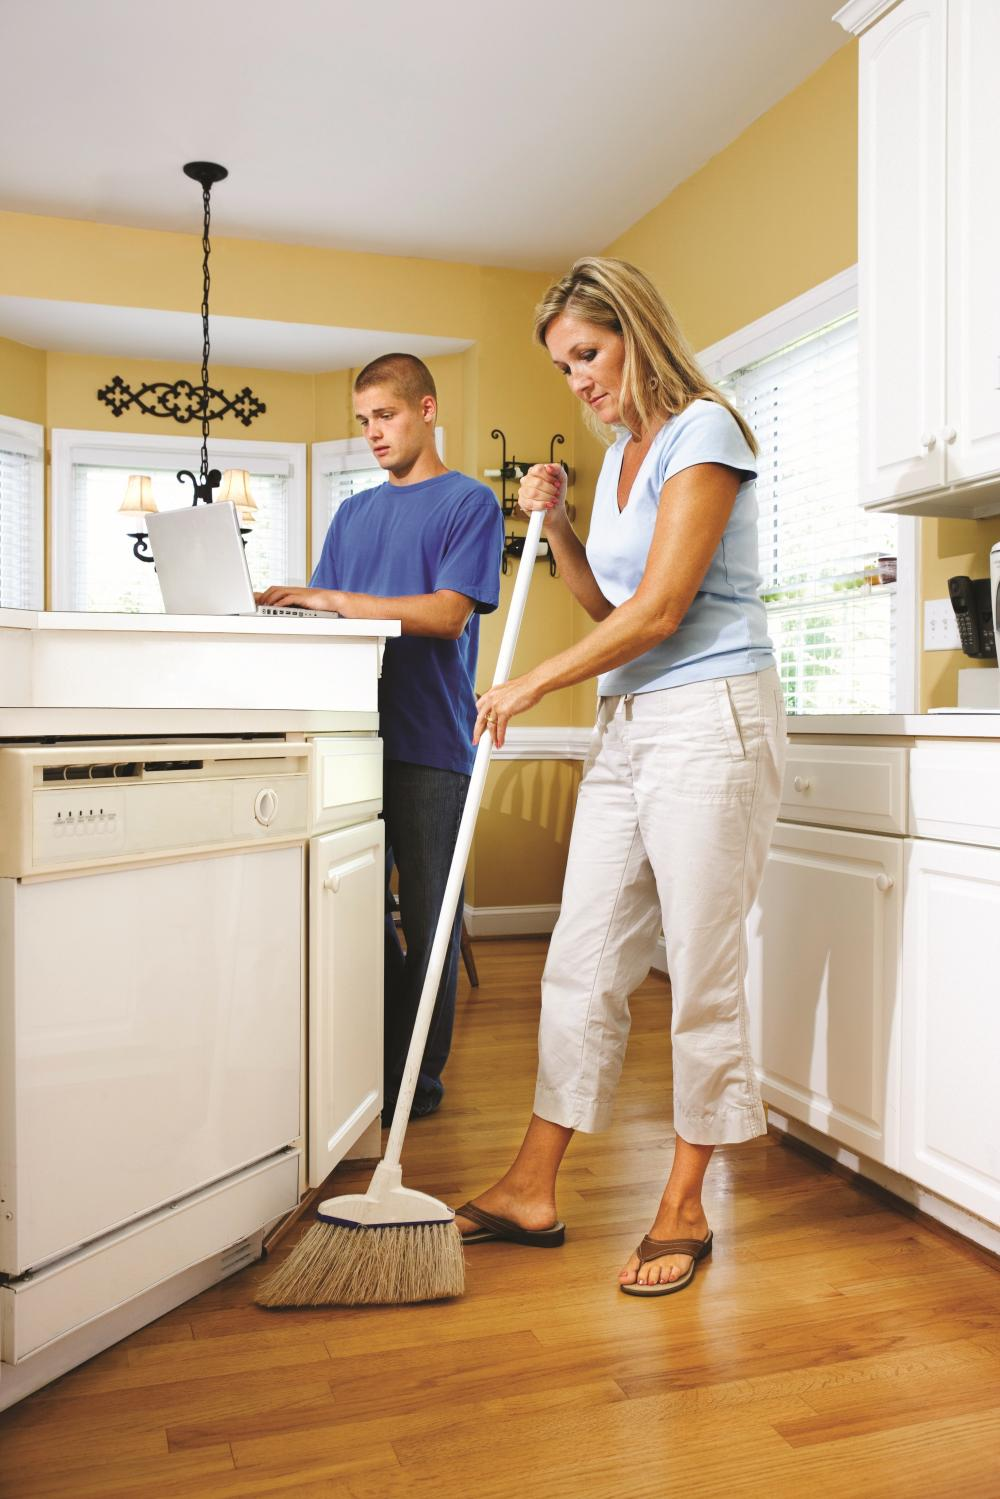 How do I make my teenager do chores?